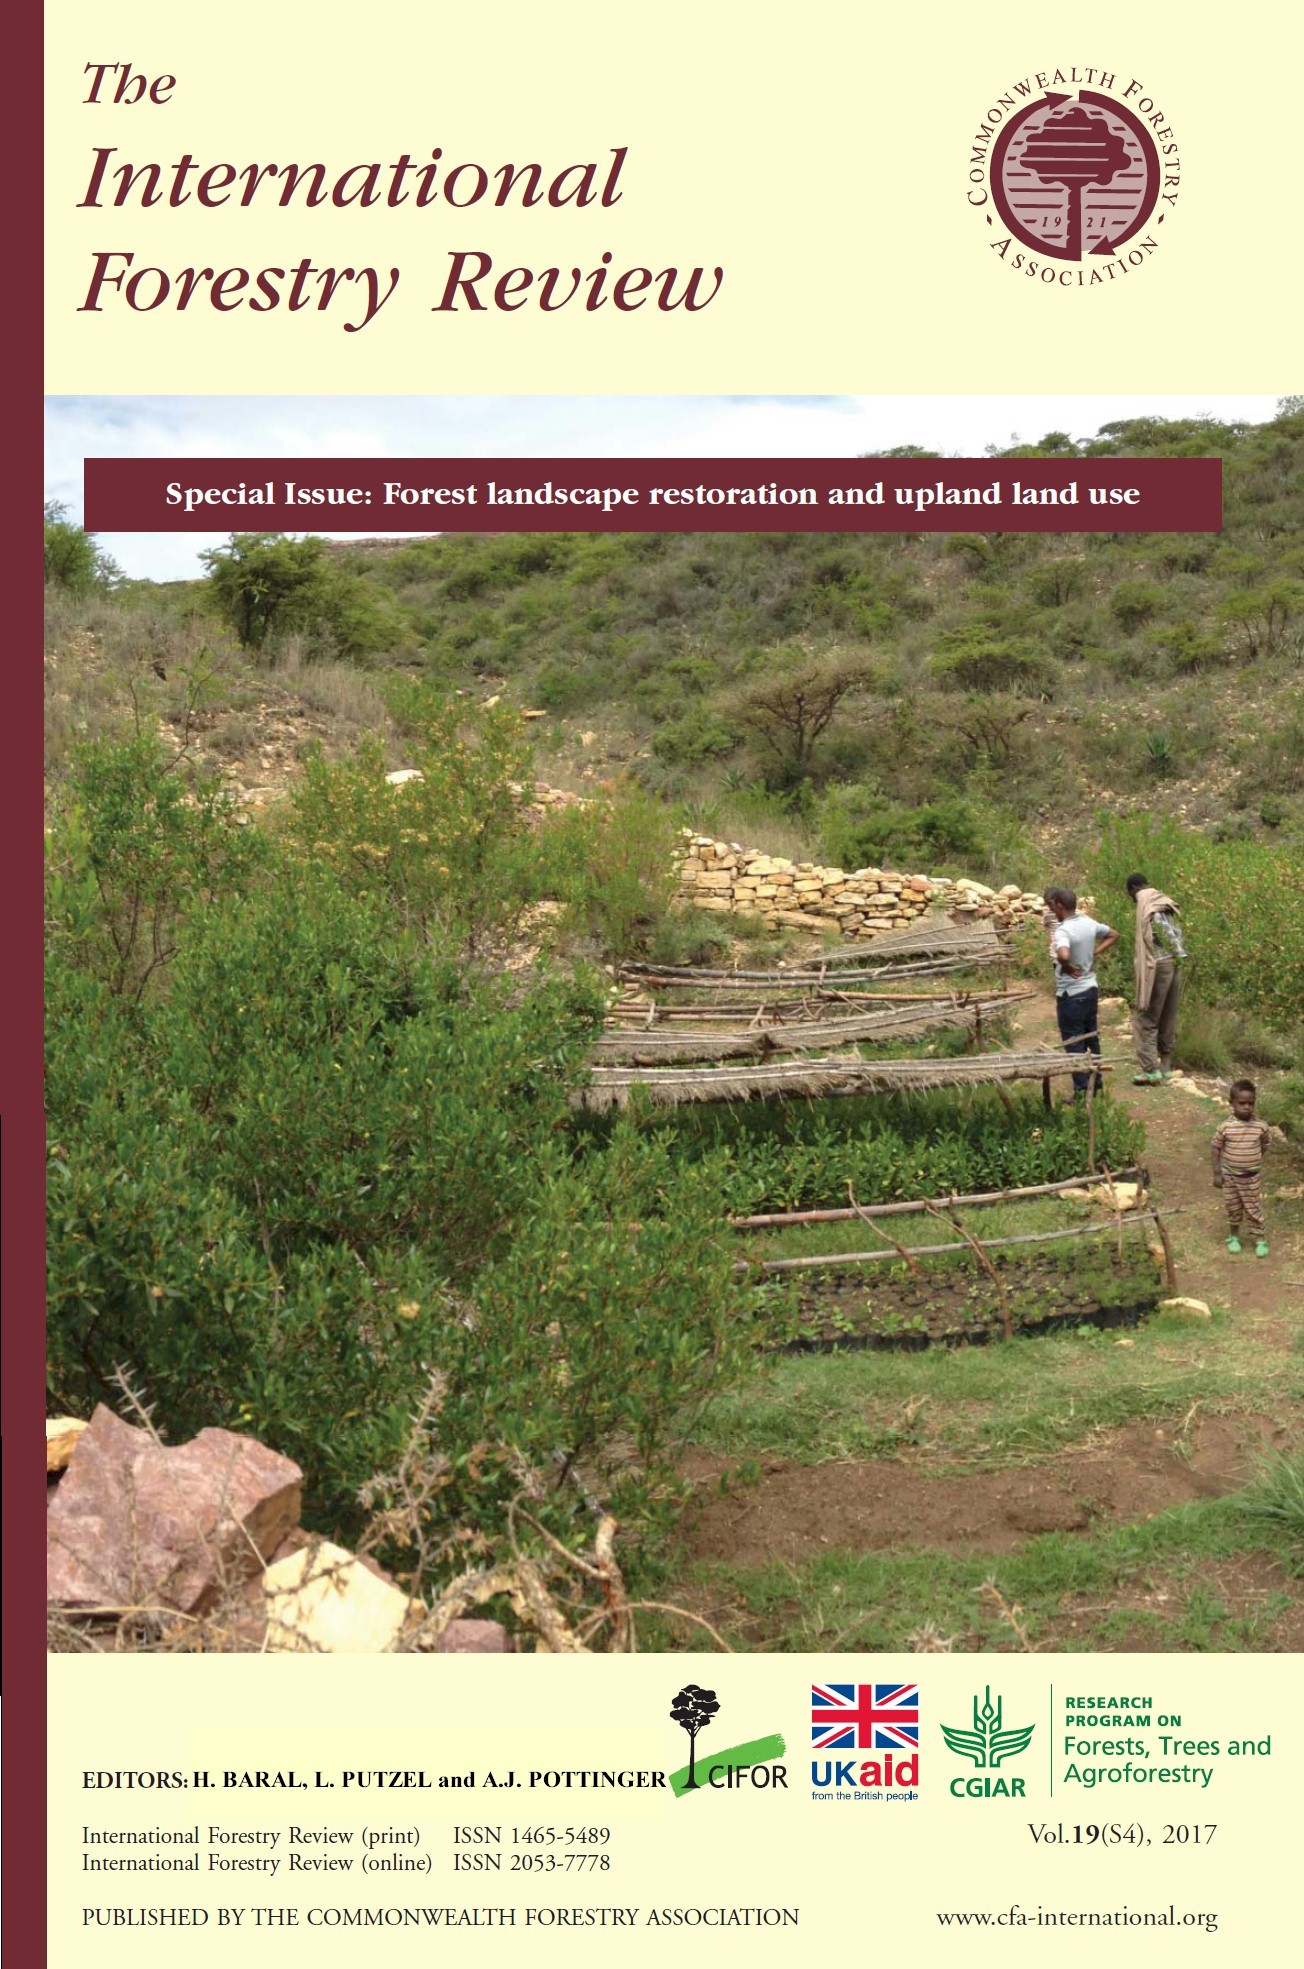 Shifting global development discourses - Implications for forests and livelihoods: Special Issue